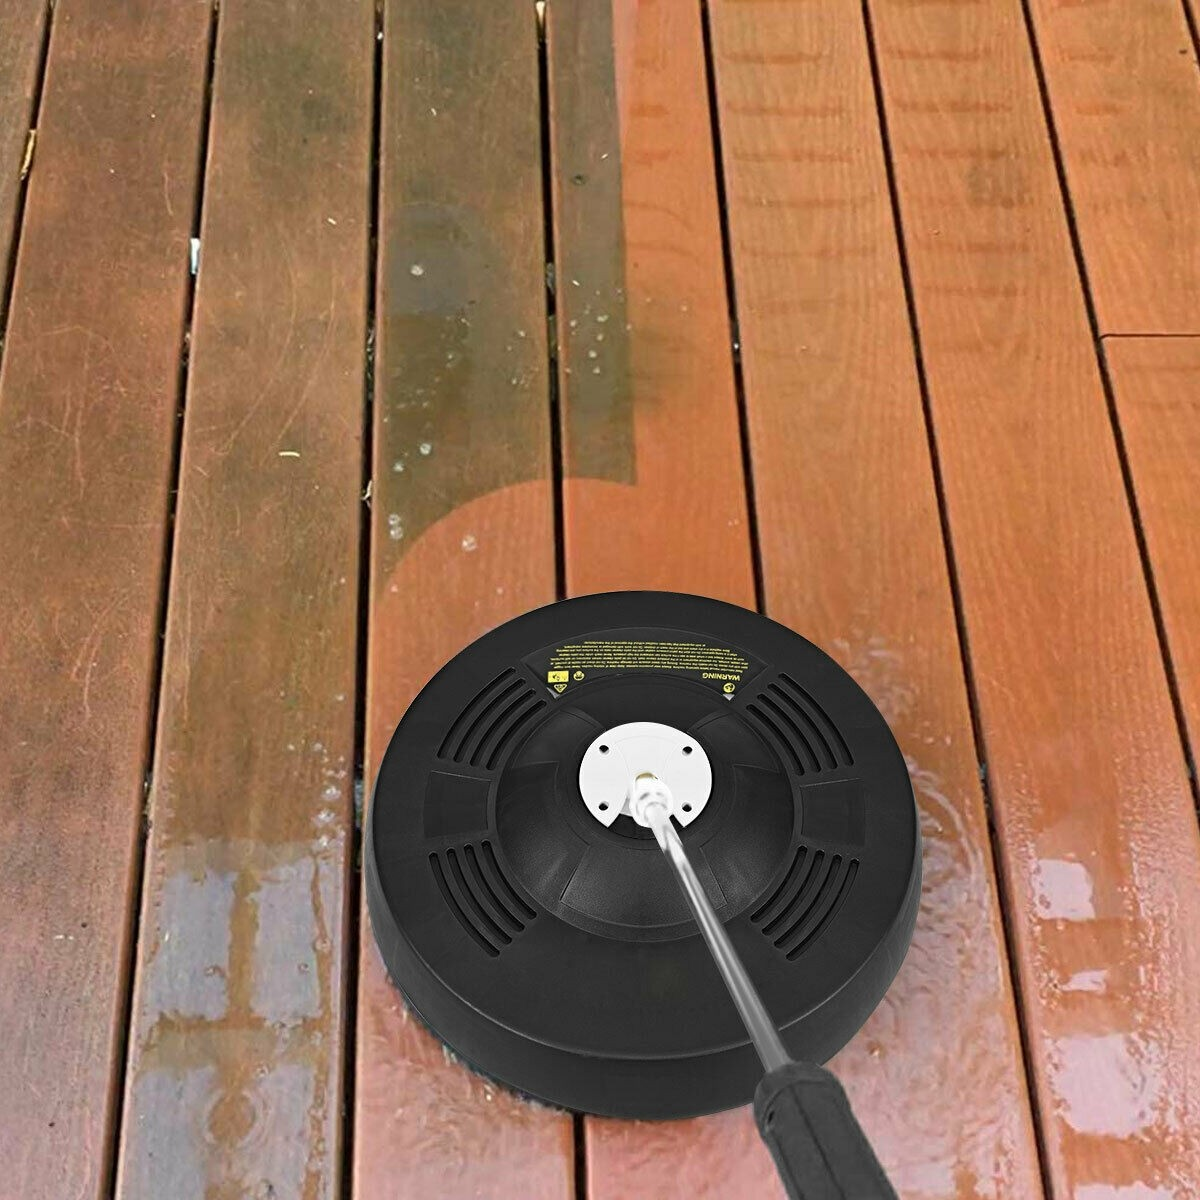 16 Inch 3000 Psi Pressure Washer Surface Cleaner Attachment Deck